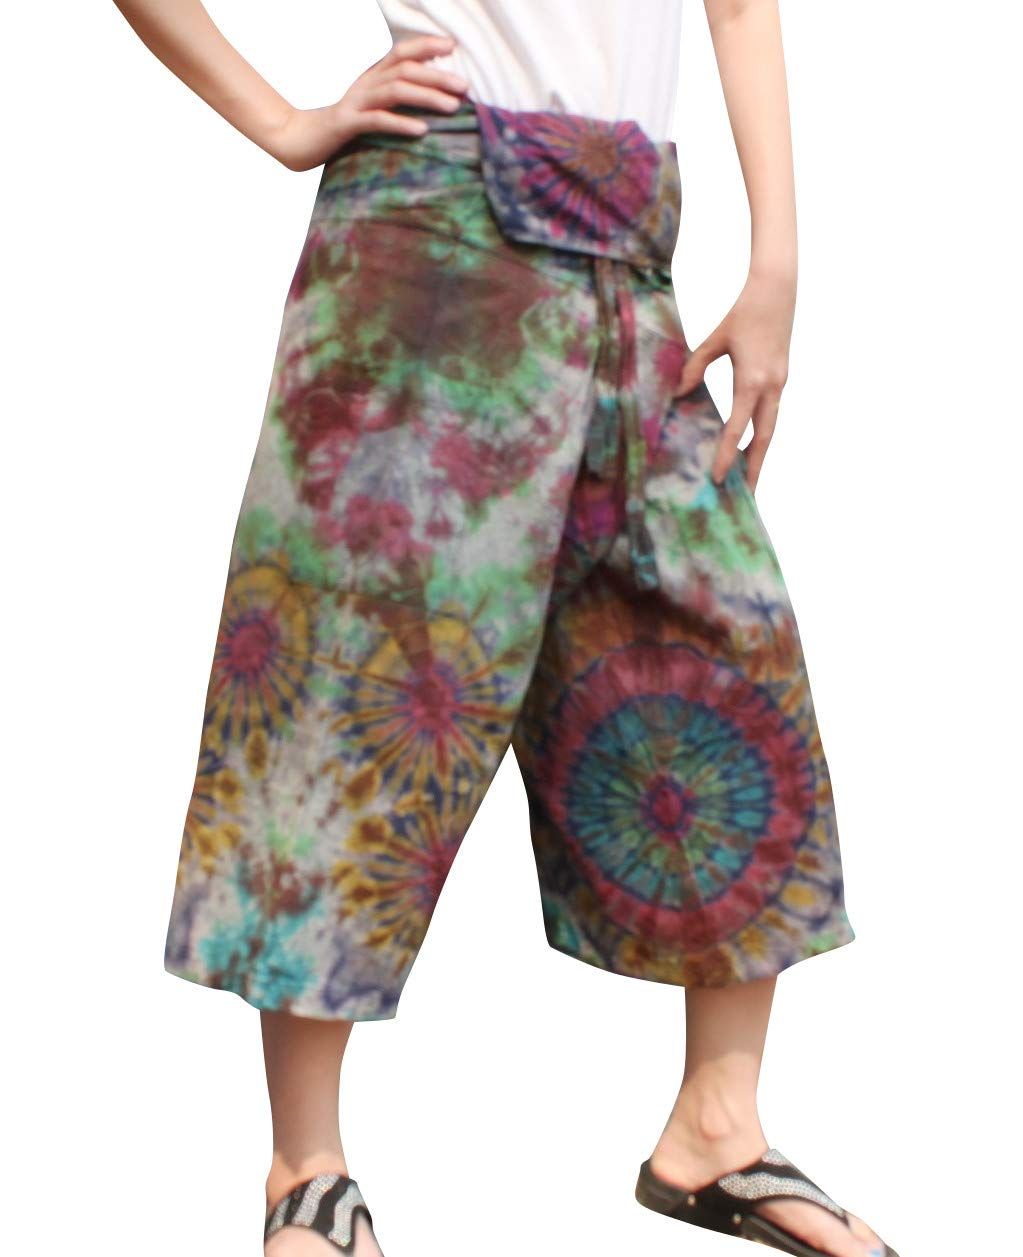 Full Funk Cotton Tie Dyed Natural Colorful Thai Fisherman Wrap 3/4 Leg Pants, Medium, Violet Murge by Full Funk